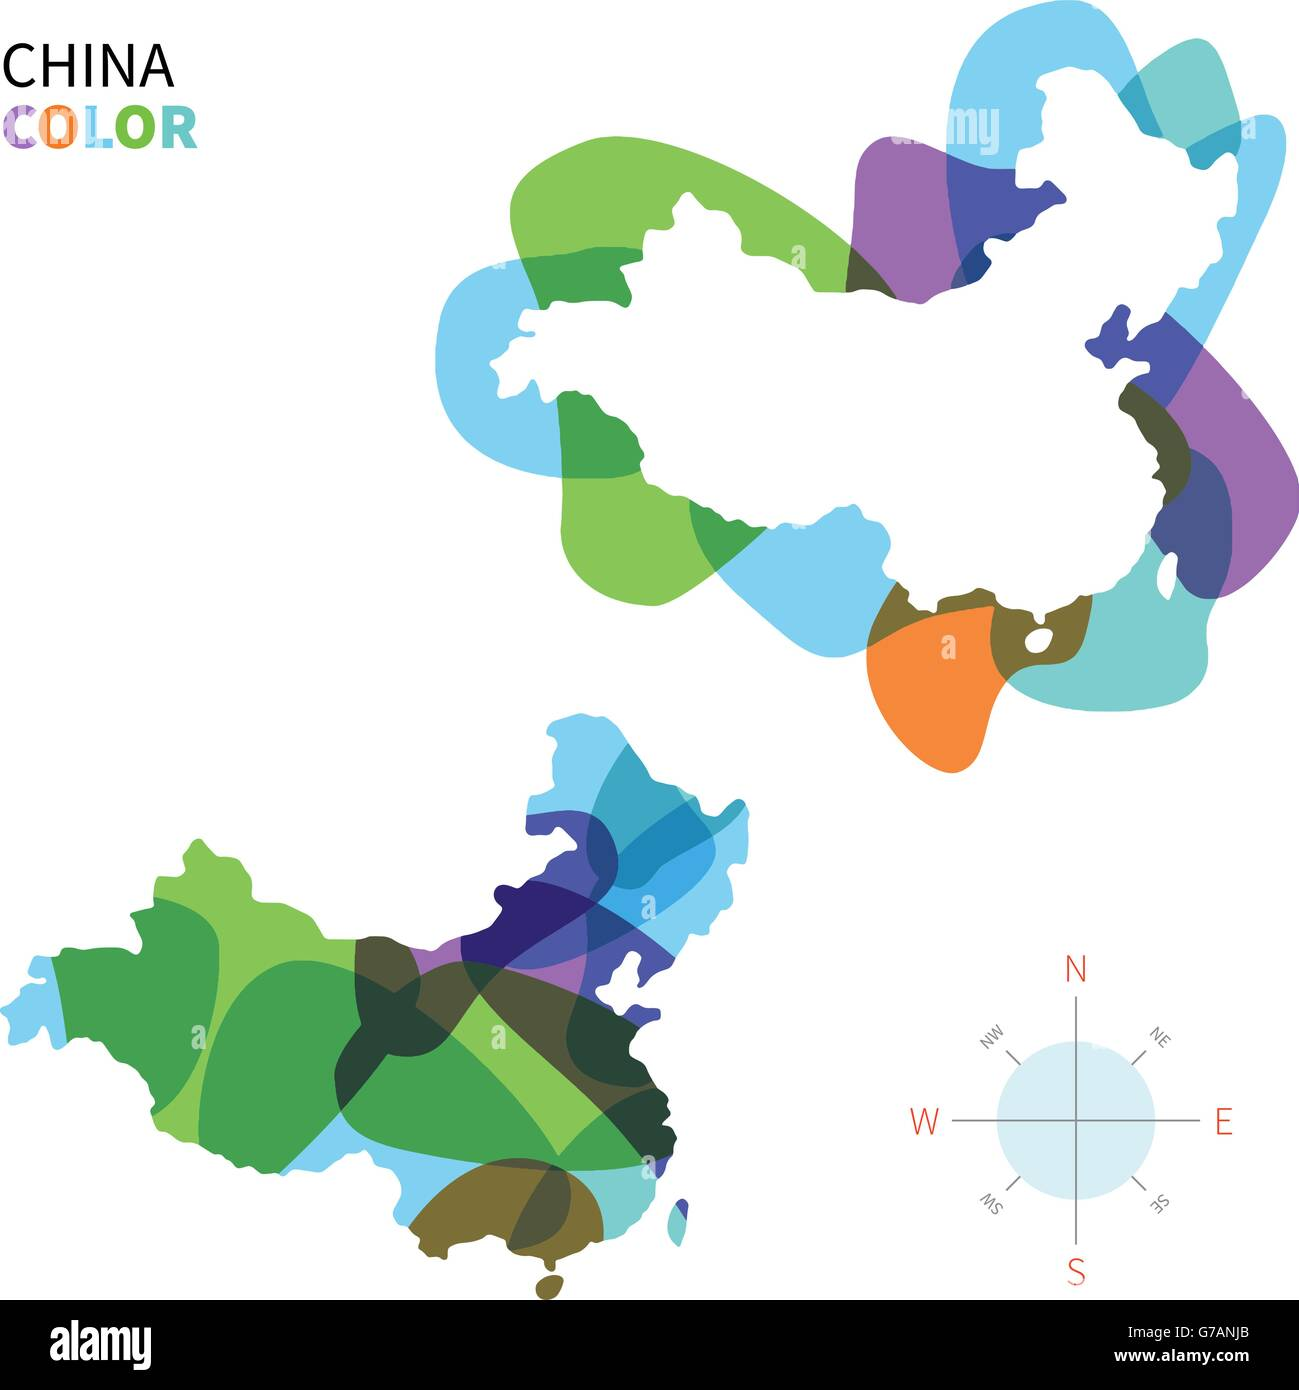 Abstract vector color map of China - Stock Image